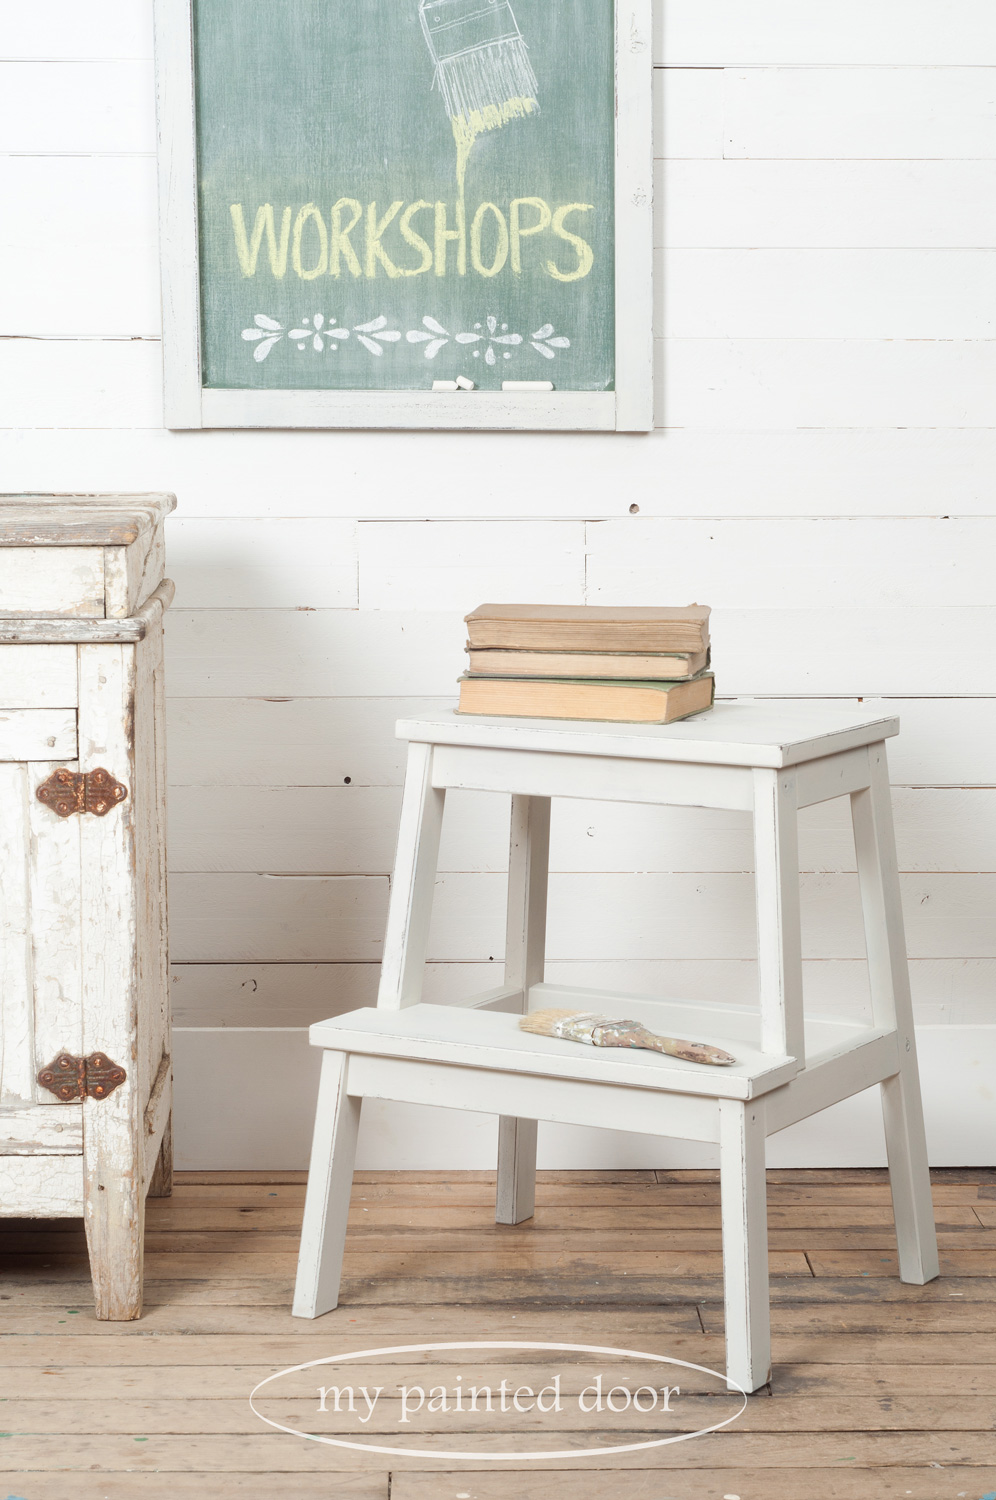 Farmhouse Chalkboard and Farmhouse Stool Workshops using Miss Mustard Seed's Milk Paint and Miss Mustard Seed's Hand Painted Stencils.